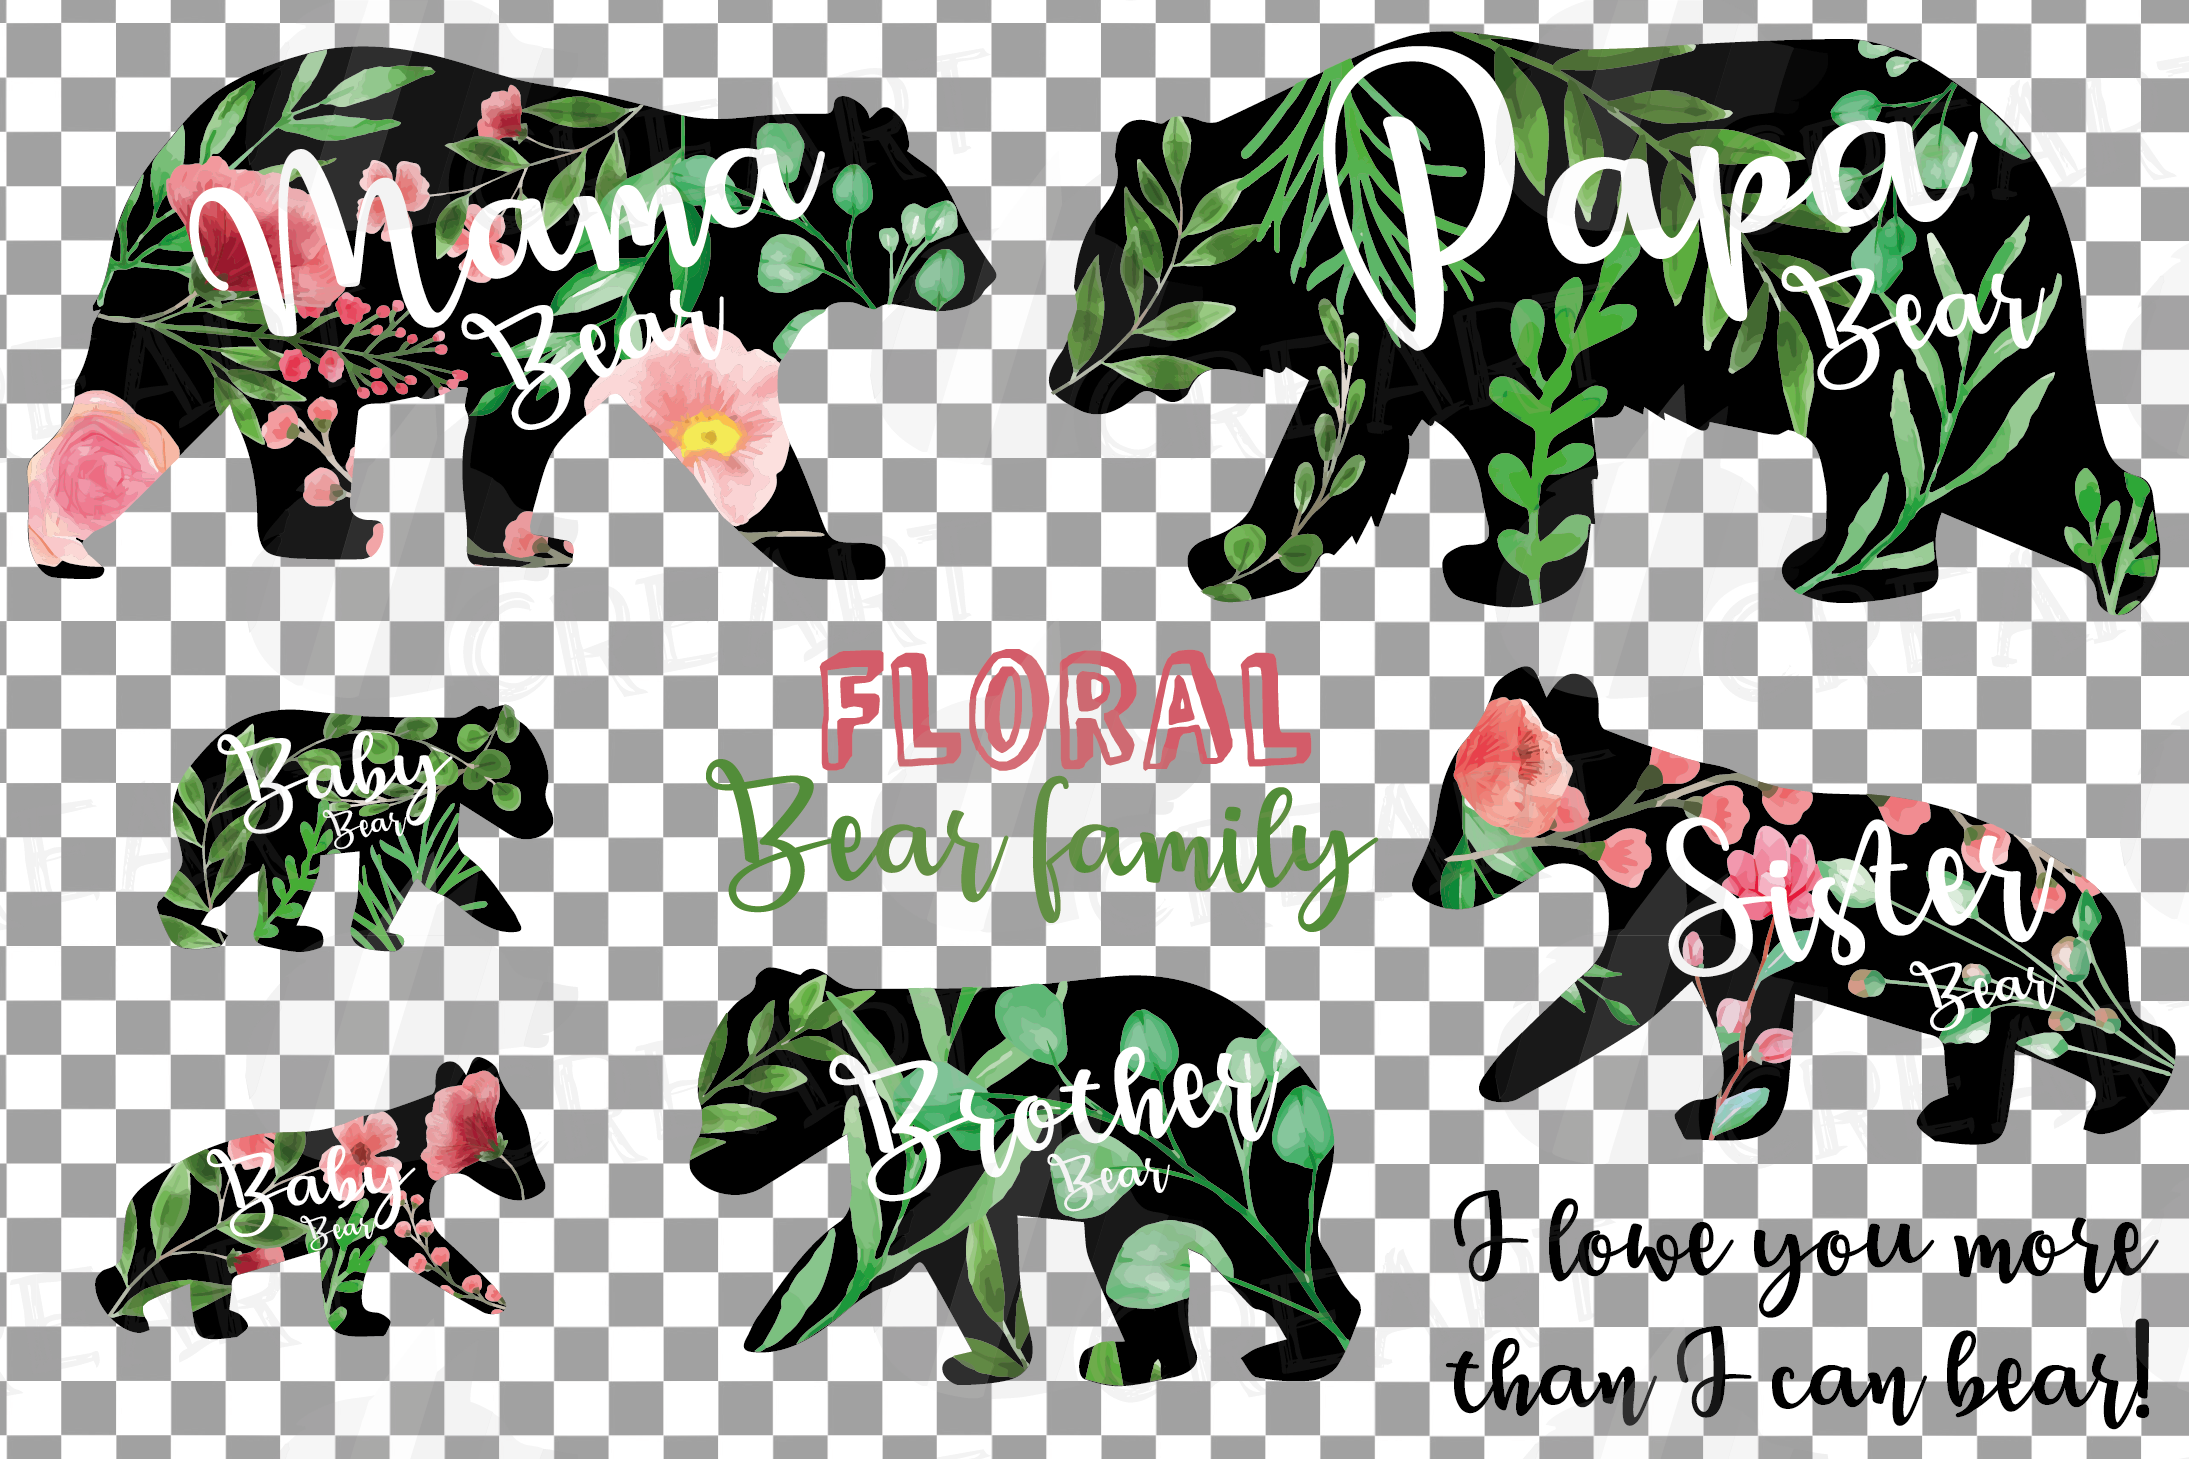 Floral bear family, sister, brother, baby, papa and mama example image 23